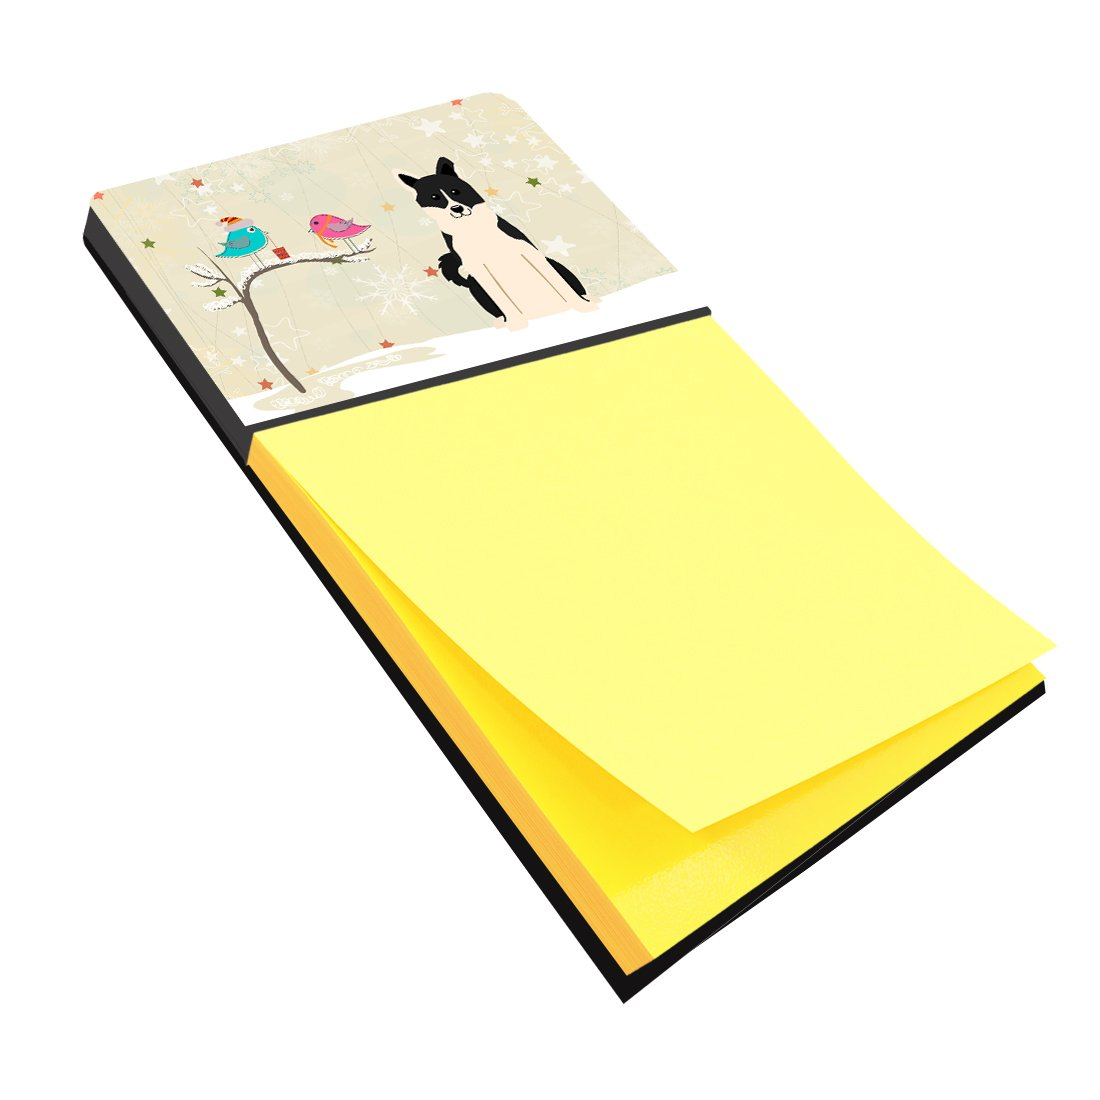 Christmas Presents between Friends Russo-European Laika Spitz Sticky Note Holder BB2501SN by Caroline's Treasures